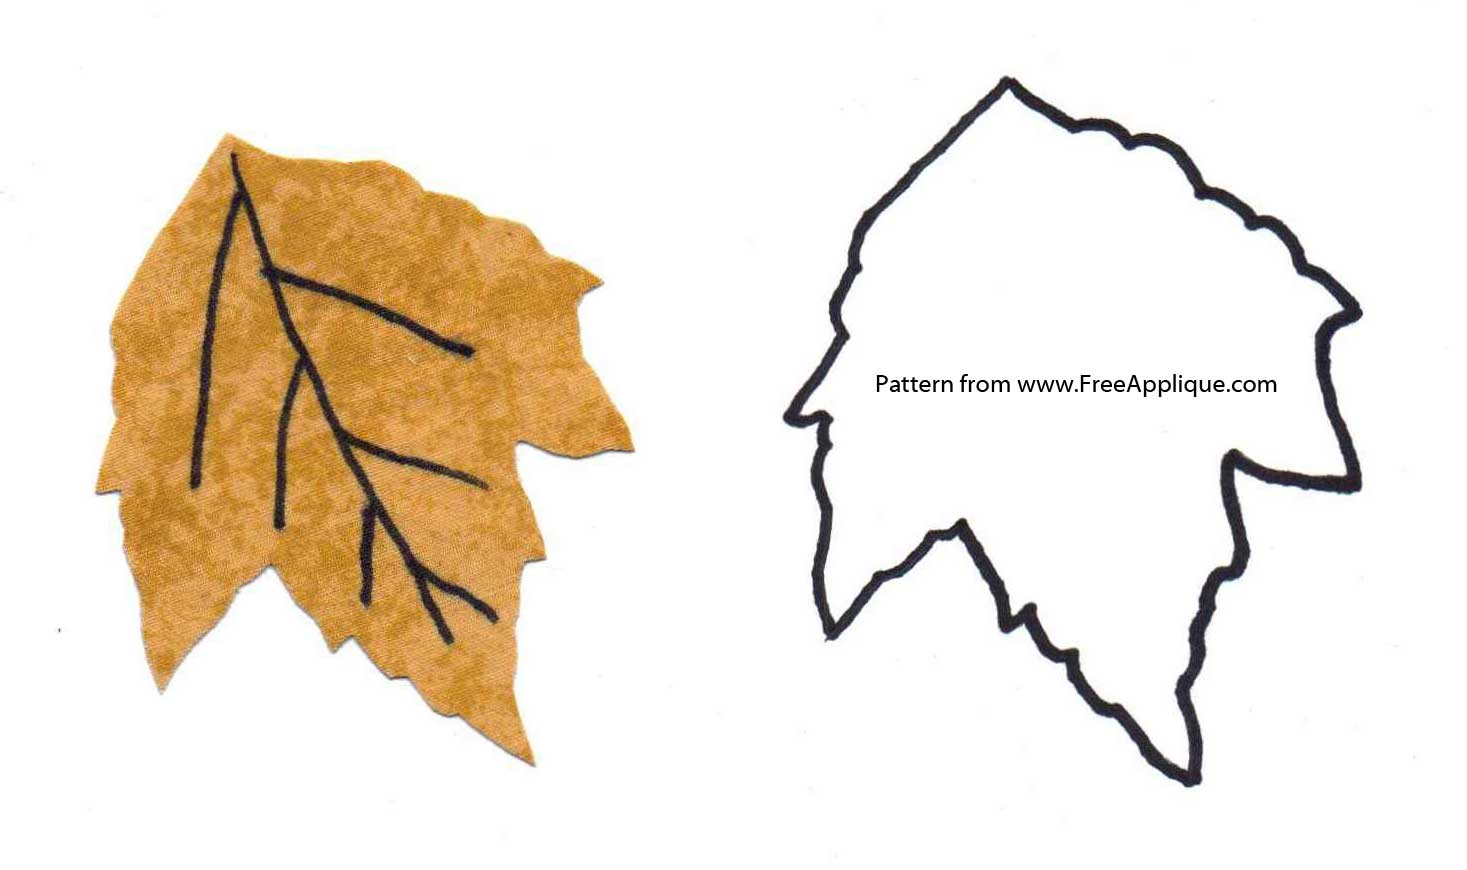 Printable Leaf Patterns for Applique, Quilting, Crafts or Clipart.